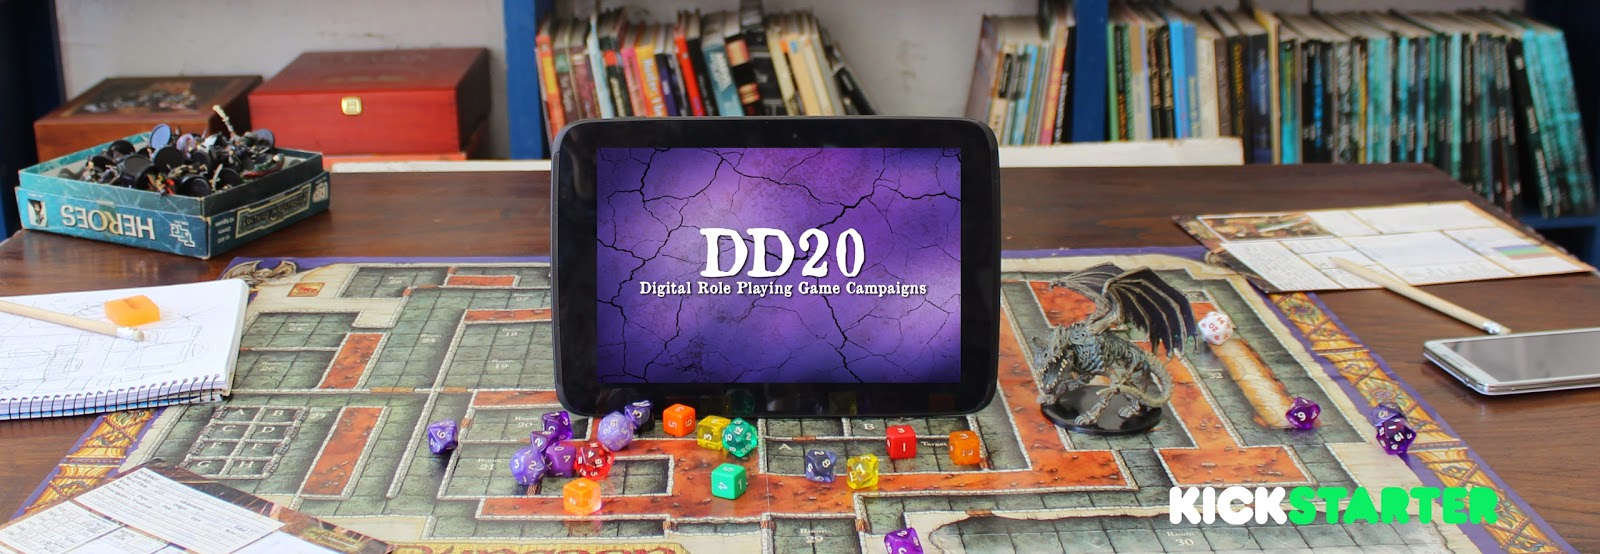 https://www.kickstarter.com/projects/325749599/digital-d20